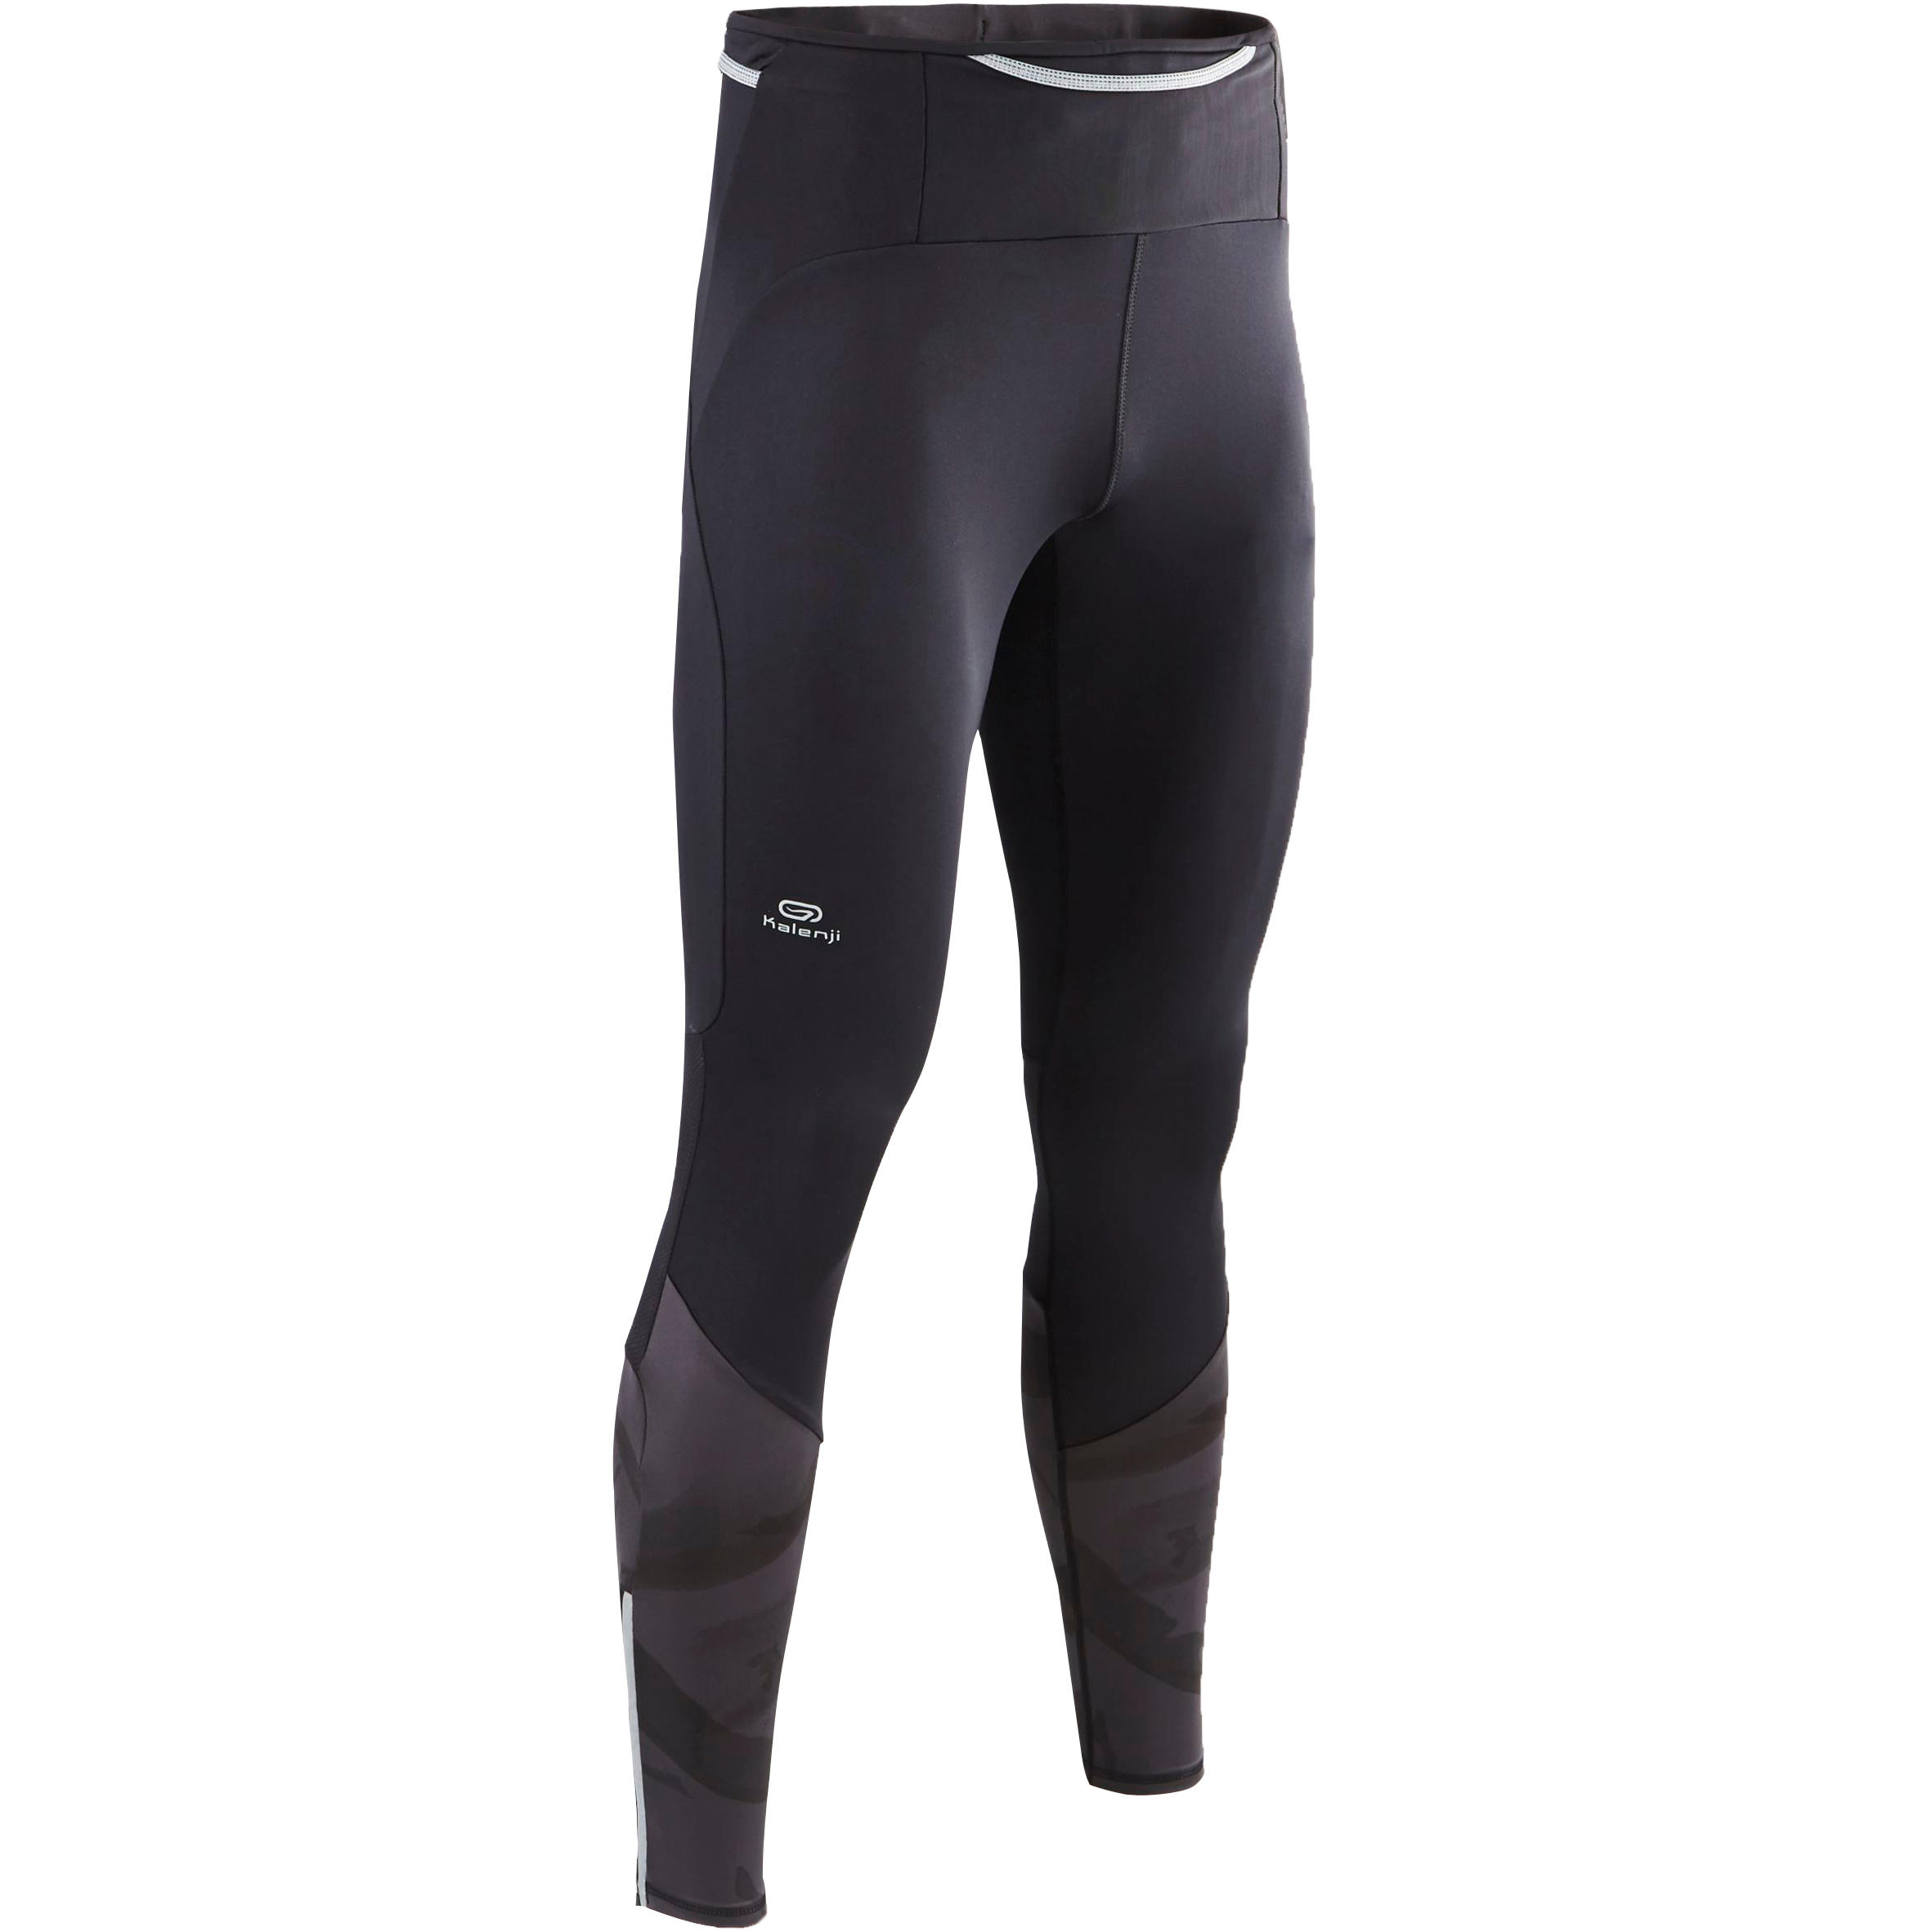 Mallas largas trail running hombre negras grises